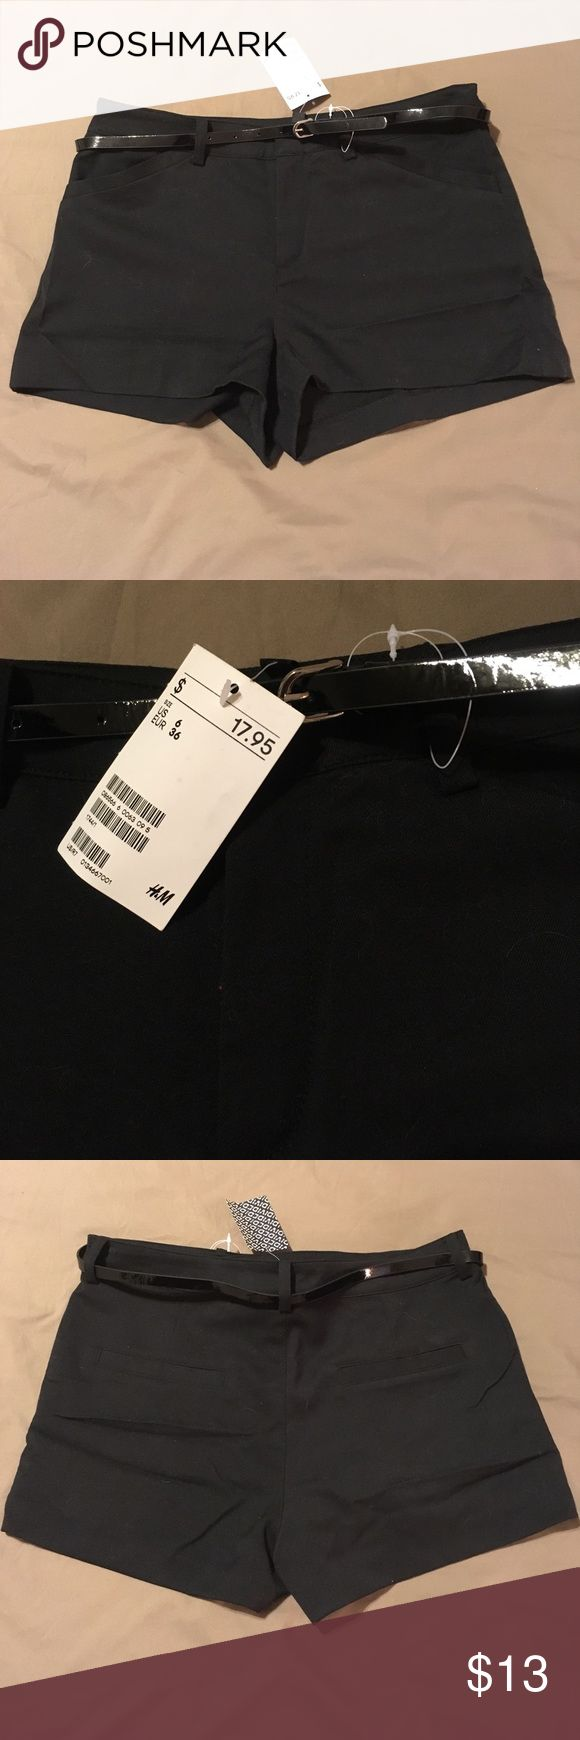 NWT H&M Divided brand Belted Shorts Brand new with tags! H&M black polyester shorts with patent black belt, perfect for dressing up or down! Size 6, orig. price was $17.95 H&M Shorts